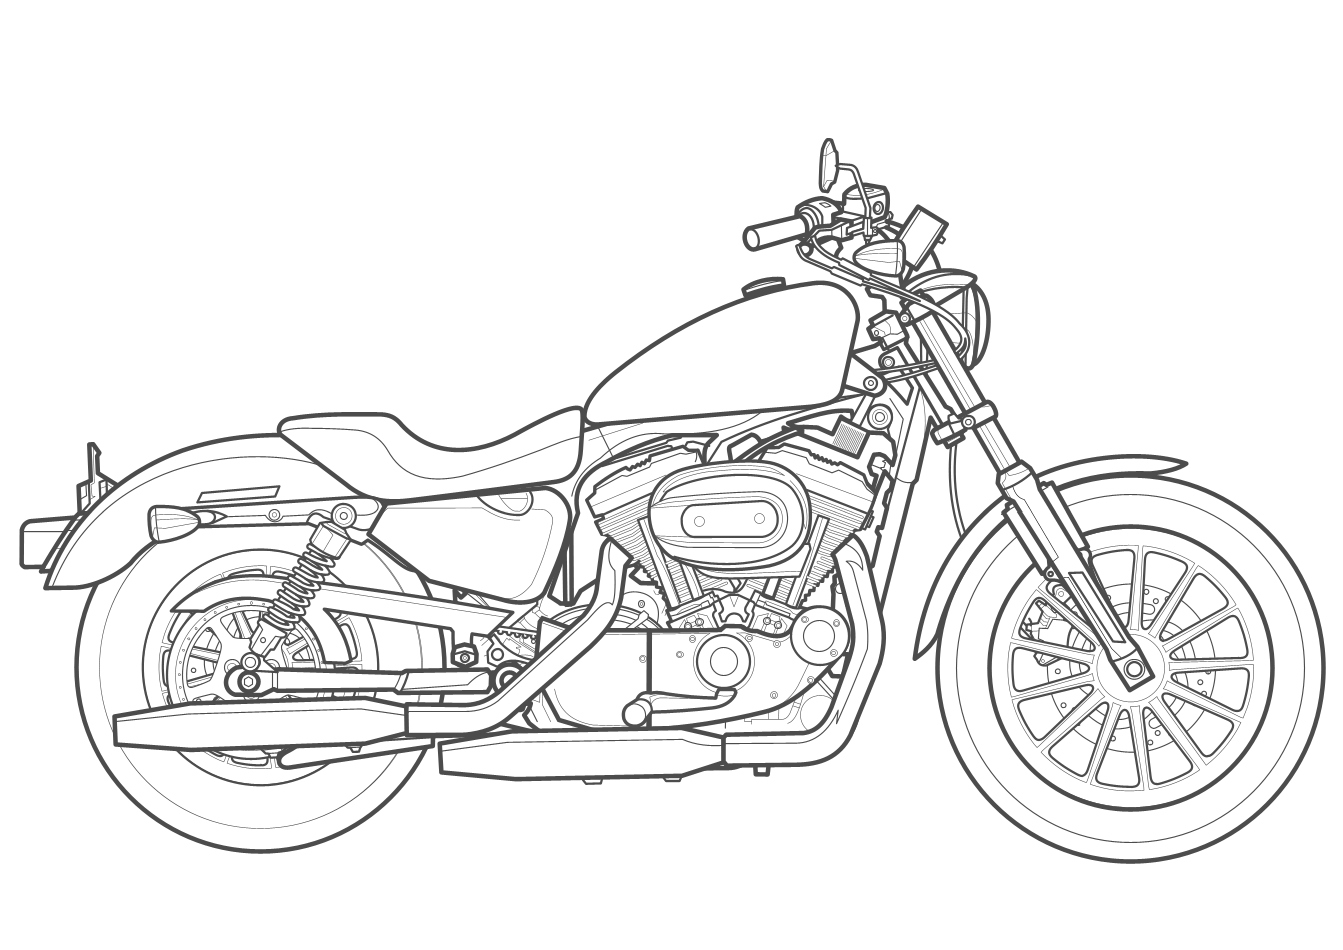 Harley Davidson Sportster 883 Engine Diagram Wiring Diagrams For 2009 1200 Parts Imageresizertool Com Softail Oil Line